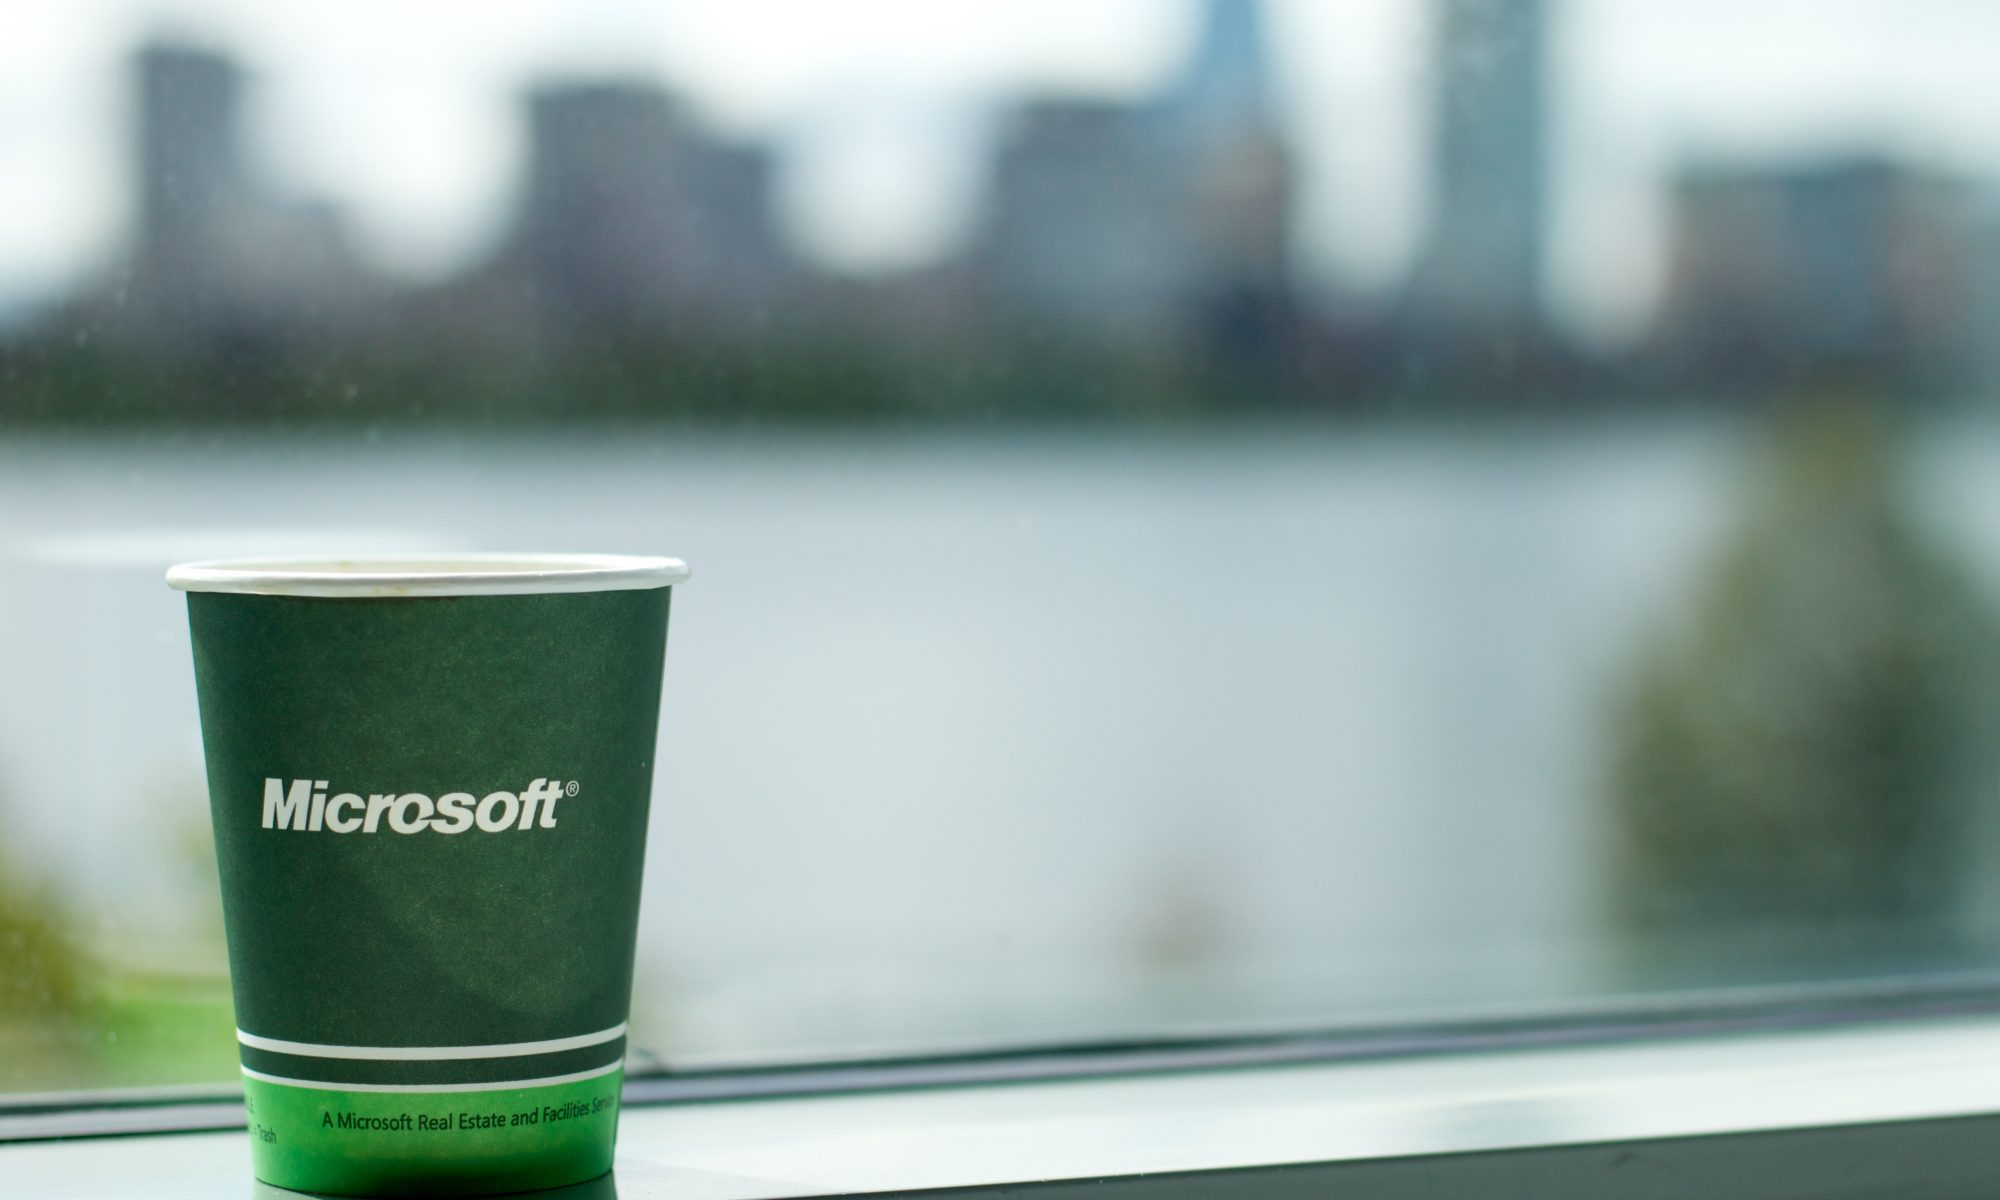 Picture of a green cup with Microsoft wording